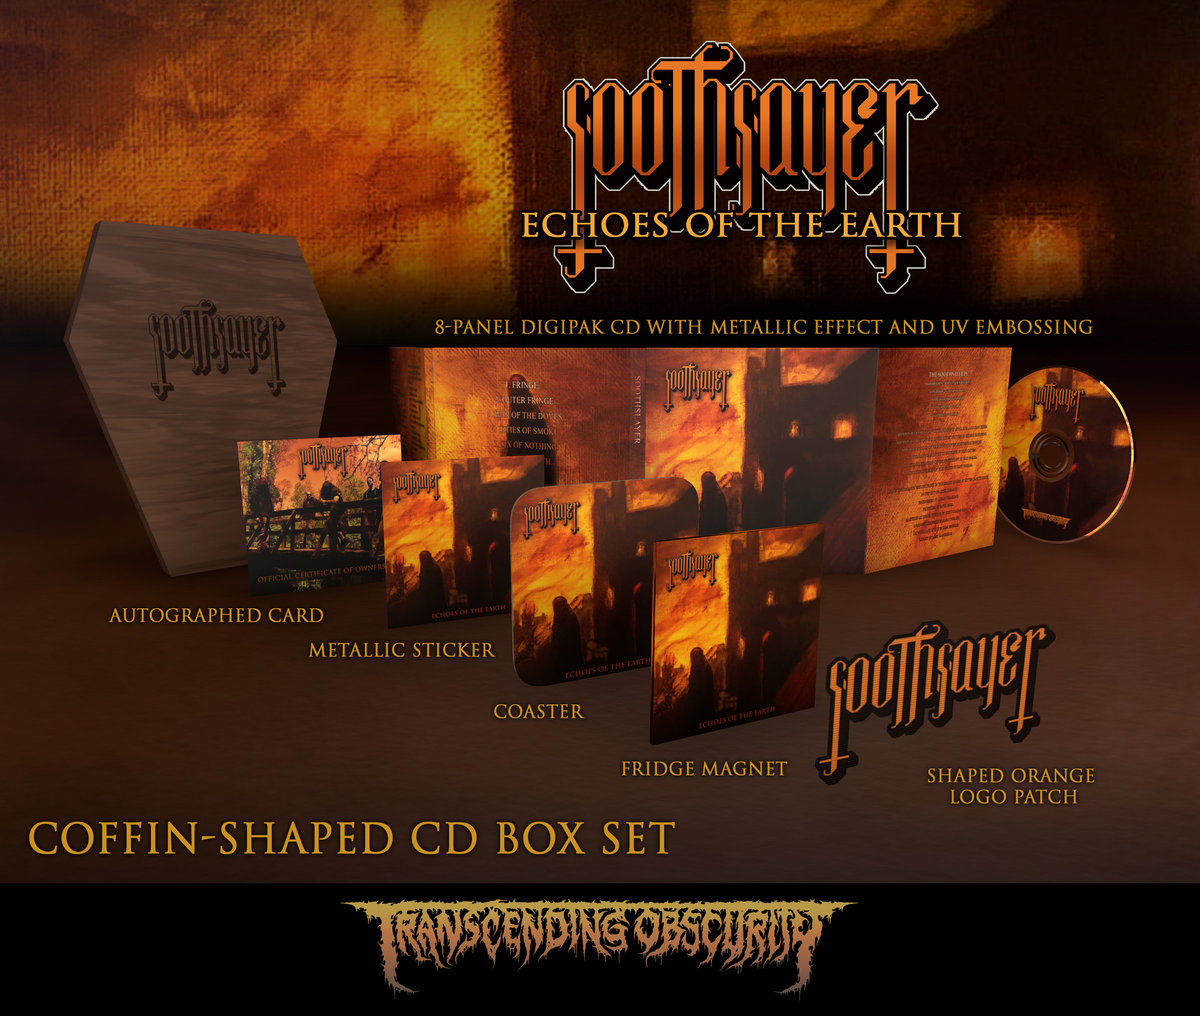 SOOTHSAYER Coffin-Shaped Brown Wooden Autographed CD Box Set (Limited to 50 nos.)